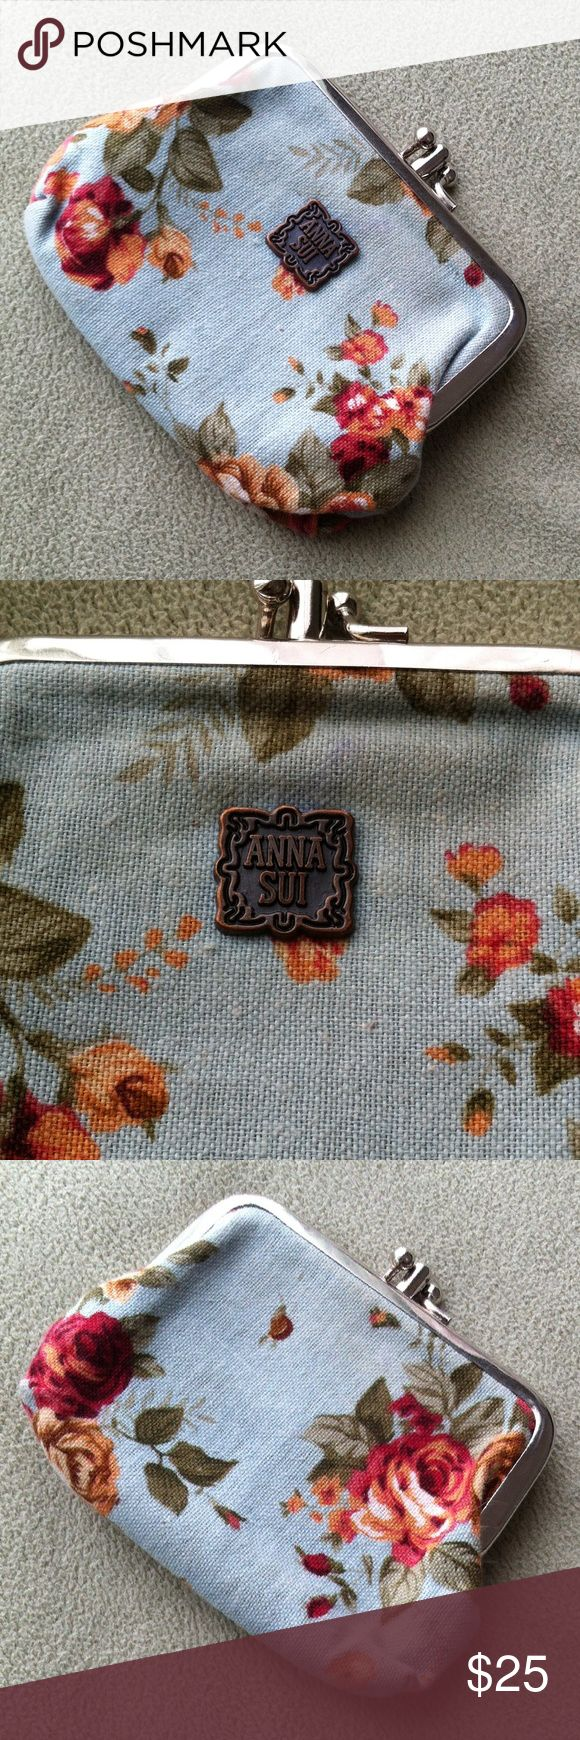 ANTHROPOLOGIE Anna Sui Coin Purse In excellent condition. Metal frame. Floral design. Two compartments with middle divider frame. Very cute! Anthropologie Bags Wallets